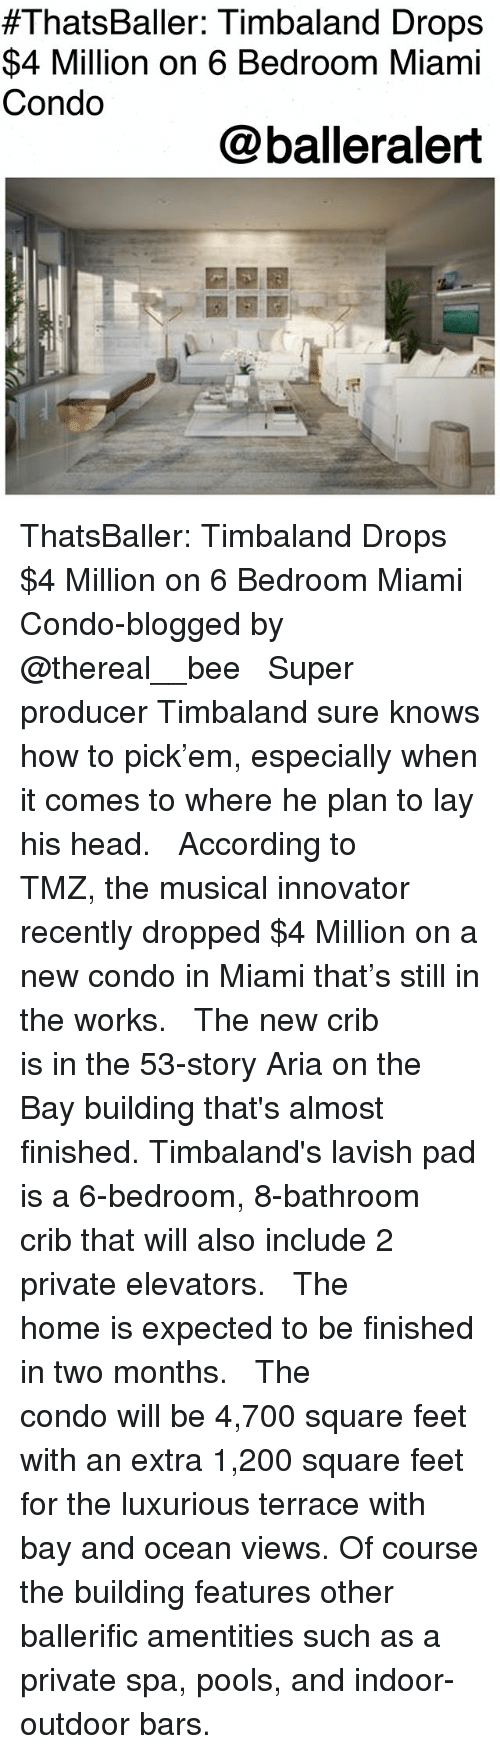 Bailey Jay, Head, and Memes:  #ThatsBaller: Timbaland Drops  $4 Million on 6 Bedroom Miami  Condo  @balleralert ThatsBaller: Timbaland Drops $4 Million on 6 Bedroom Miami Condo-blogged by @thereal__bee ⠀⠀⠀⠀⠀⠀⠀⠀⠀ ⠀⠀ Super producer Timbaland sure knows how to pick'em, especially when it comes to where he plan to lay his head. ⠀⠀⠀⠀⠀⠀⠀⠀⠀ ⠀⠀ According to TMZ, the musical innovator recently dropped $4 Million on a new condo in Miami that's still in the works. ⠀⠀⠀⠀⠀⠀⠀⠀⠀ ⠀⠀ The new crib is in the 53-story Aria on the Bay building that's almost finished. Timbaland's lavish pad is a 6-bedroom, 8-bathroom crib that will also include 2 private elevators. ⠀⠀⠀⠀⠀⠀⠀⠀⠀ ⠀⠀ The home is expected to be finished in two months. ⠀⠀⠀⠀⠀⠀⠀⠀⠀ ⠀⠀ The condo will be 4,700 square feet with an extra 1,200 square feet for the luxurious terrace with bay and ocean views. Of course the building features other ballerific amentities such as a private spa, pools, and indoor-outdoor bars.